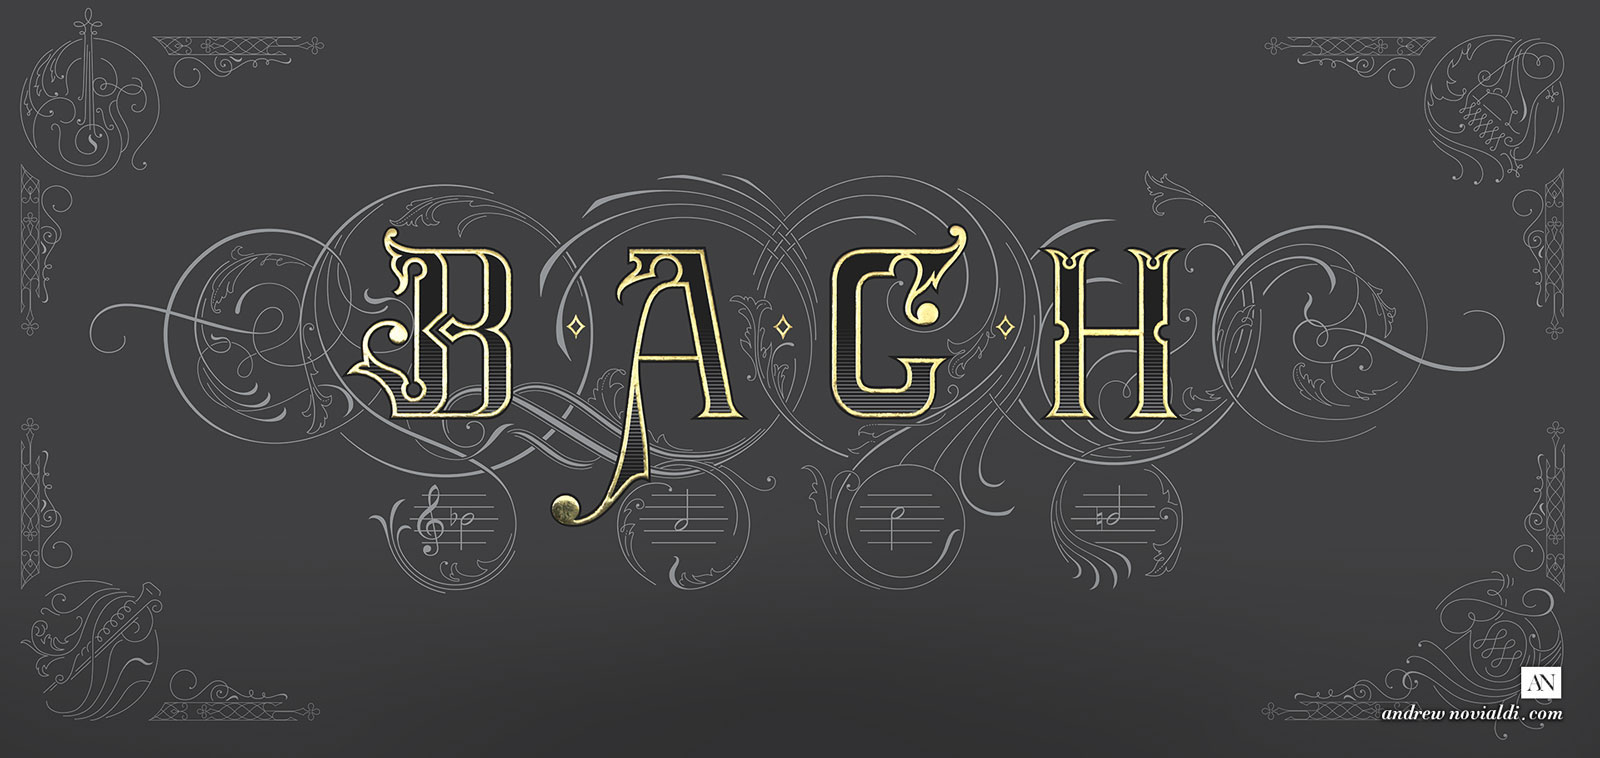 On The Theme of B.A.C.H The Art of Fugue Lettering Design